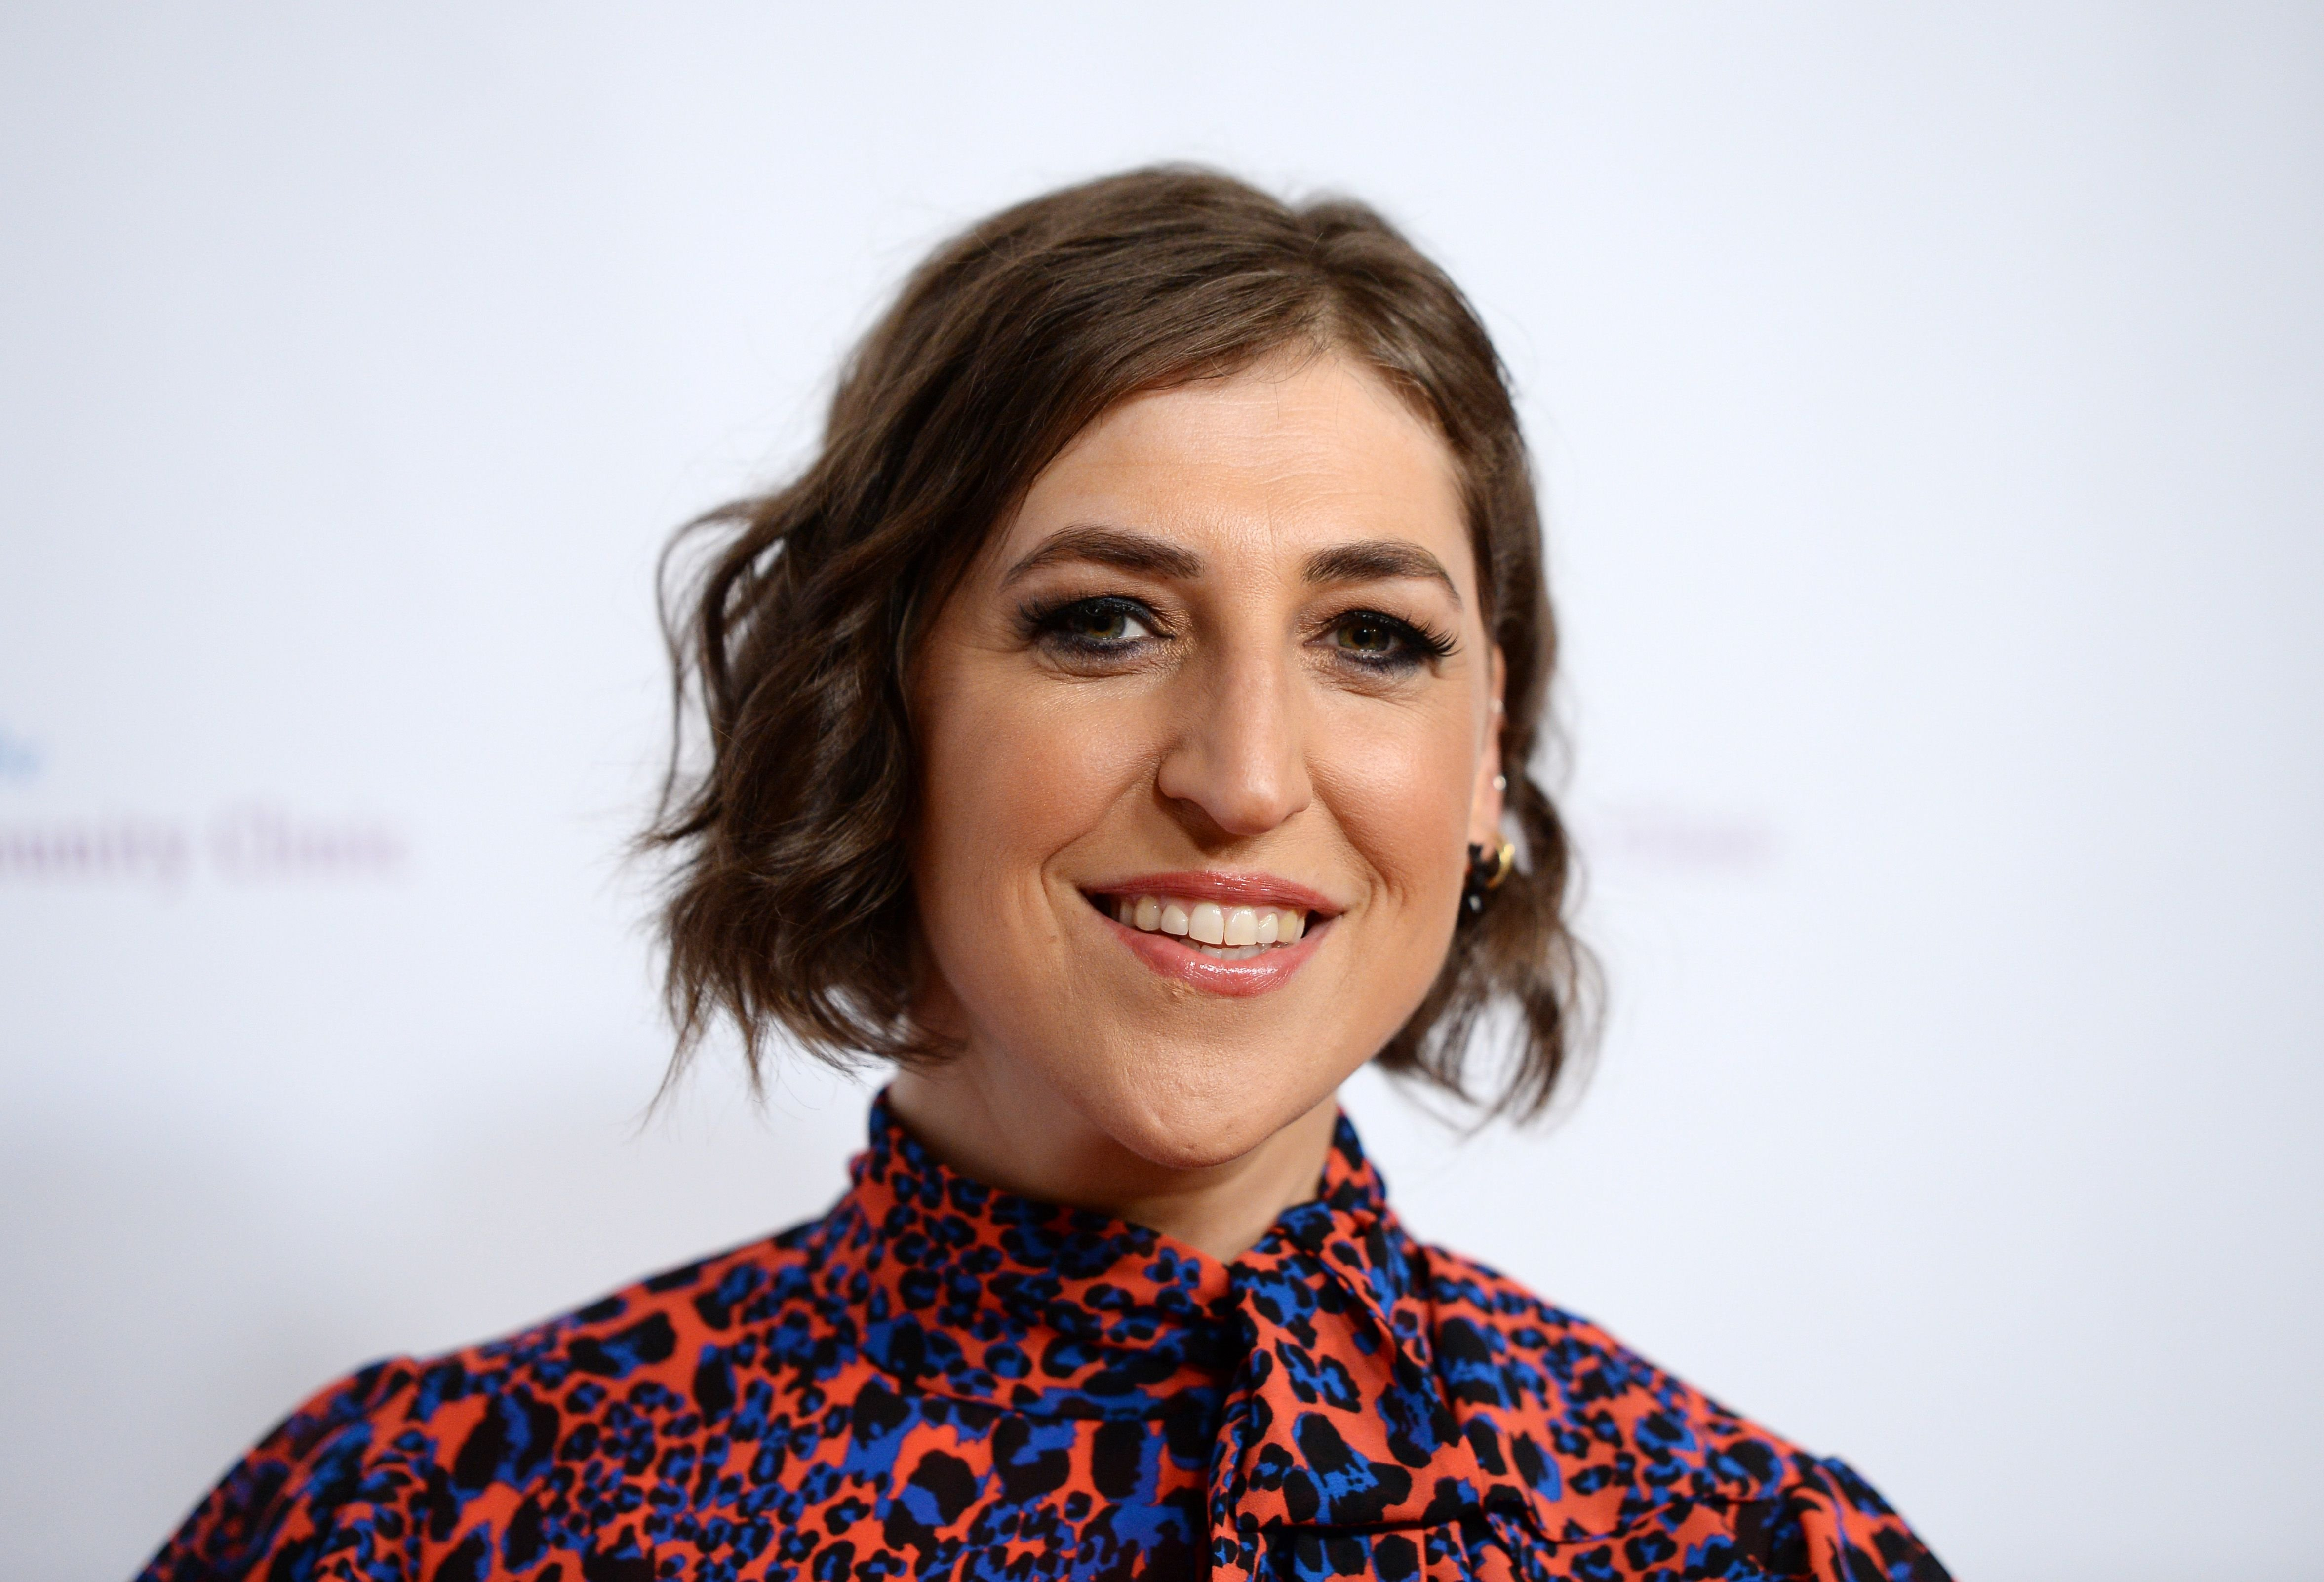 Mayim Bialik at the Saban Community Clinic's 43rd Annual Dinner Gala at The Beverly Hilton Hotel on November 18, 2019 in Beverly Hills, California. | Photo: Getty Images